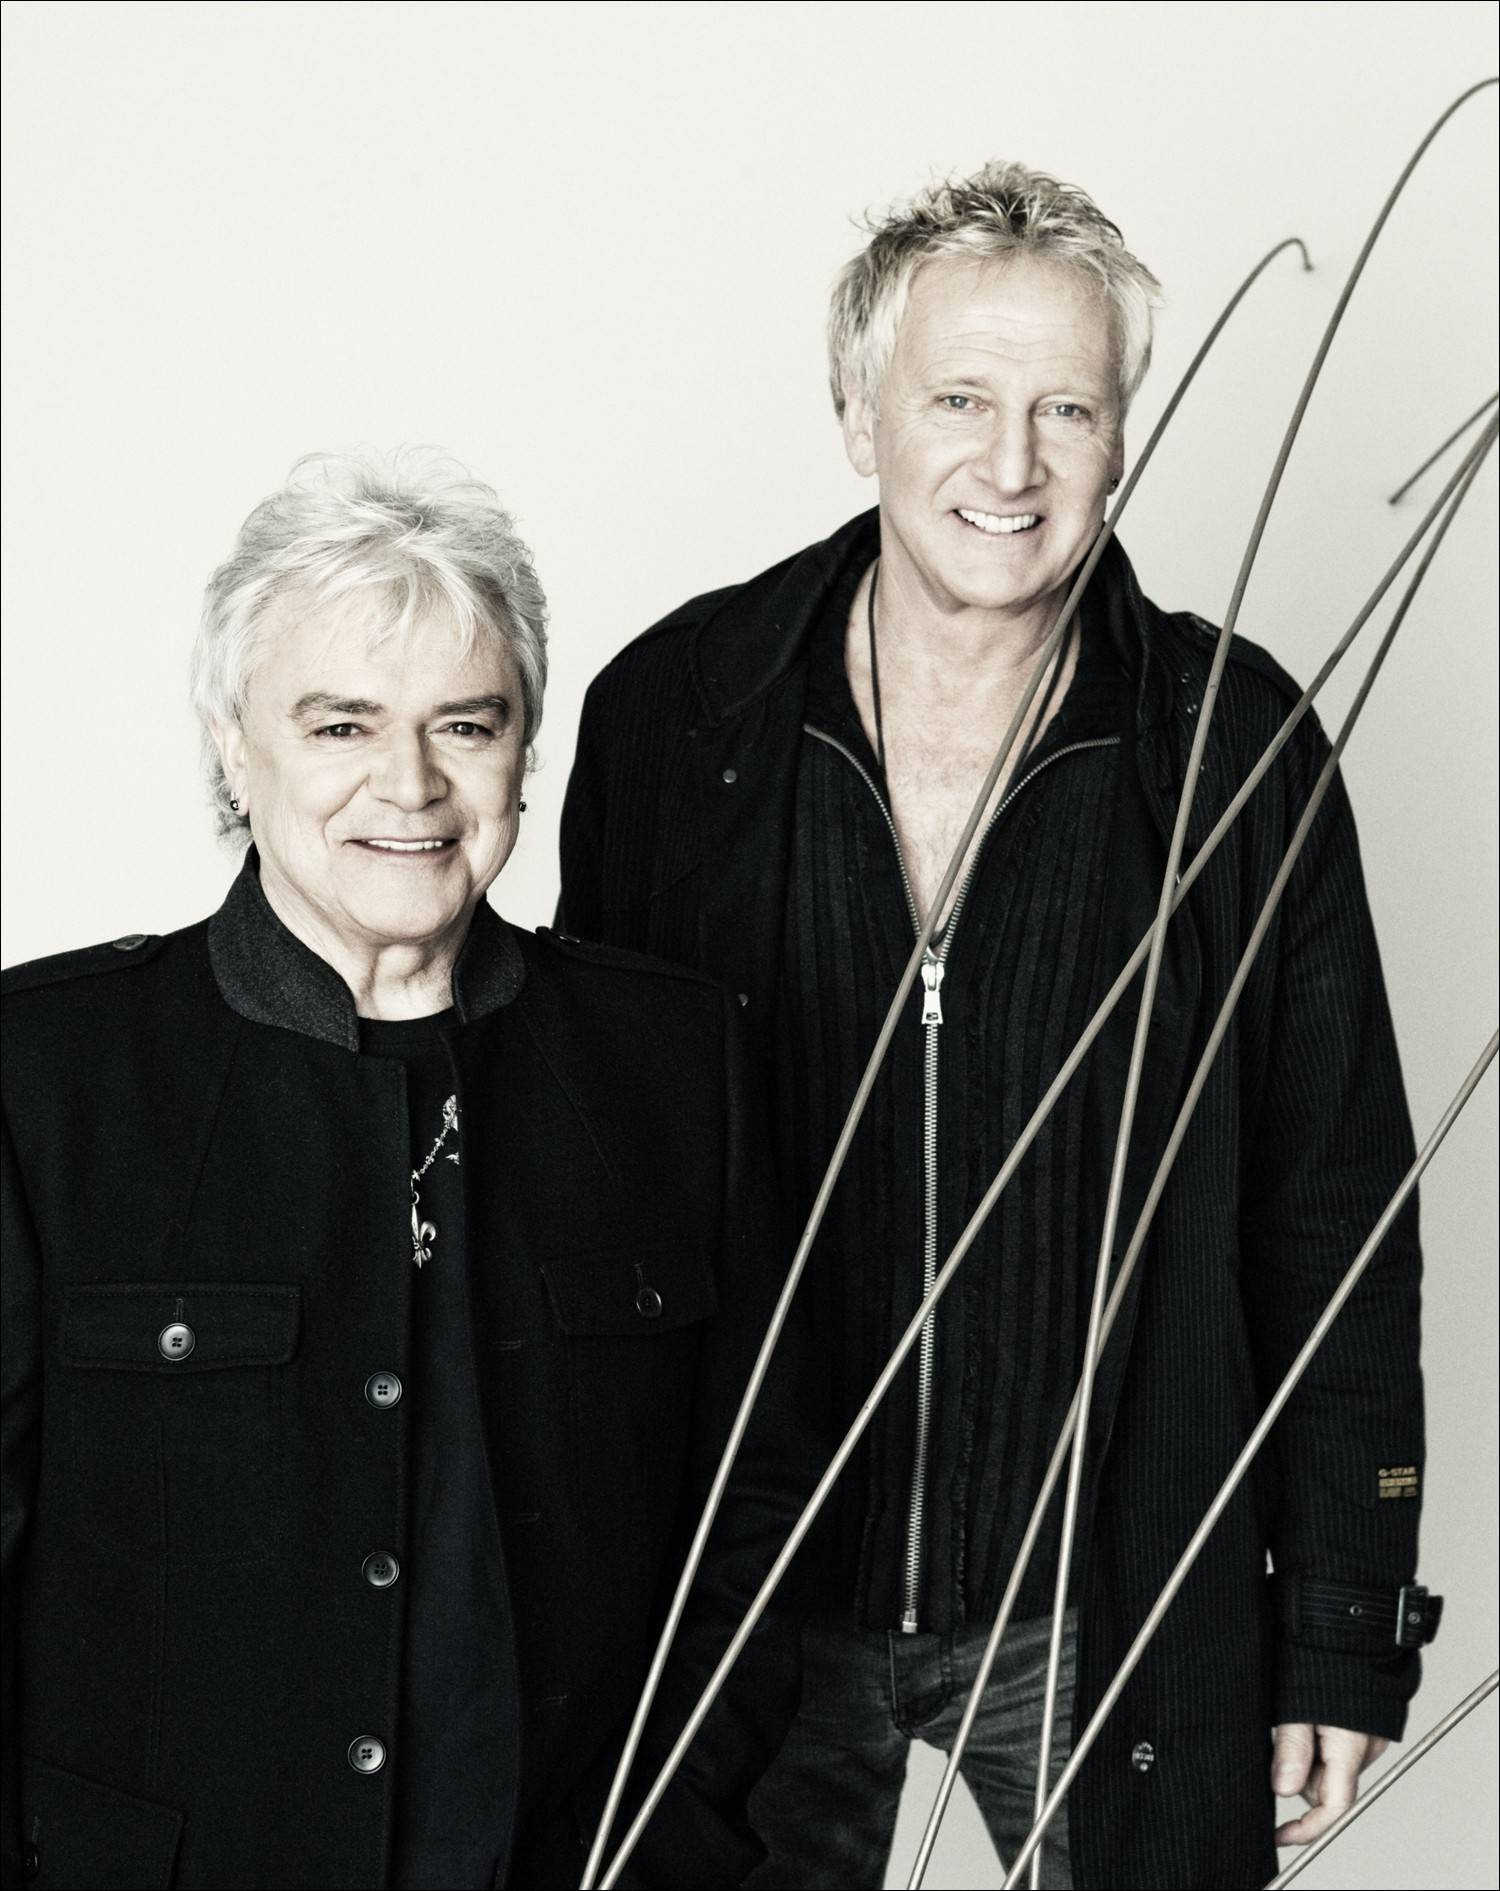 Air Supply headlines the Arcada in St. Charles Friday.